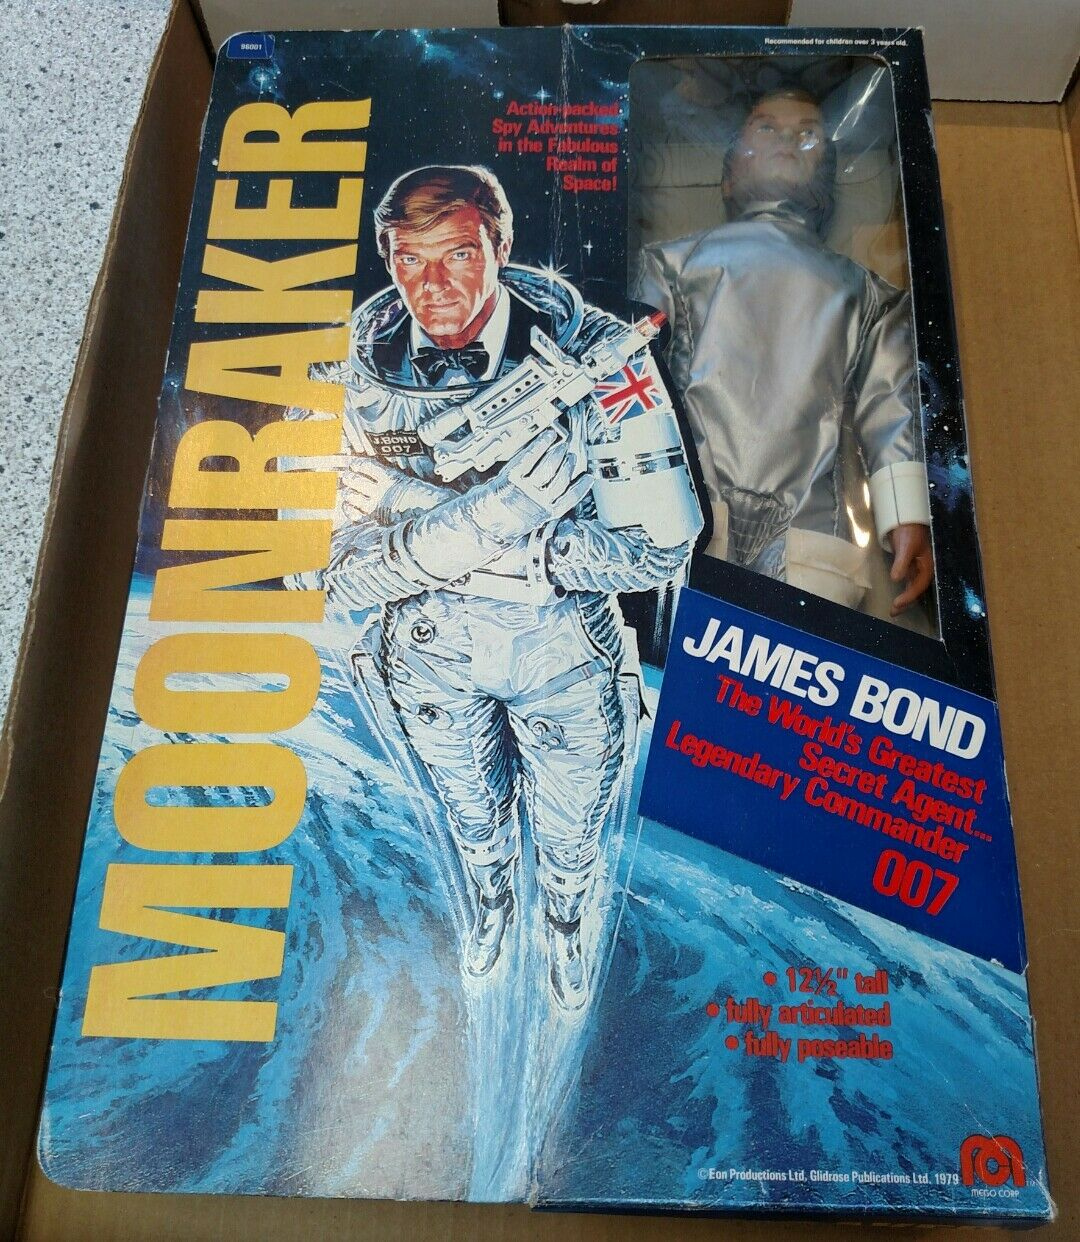 MEGO JAMES BOND MOONRAKER VINTAGE 1979 007 IN THE BOX